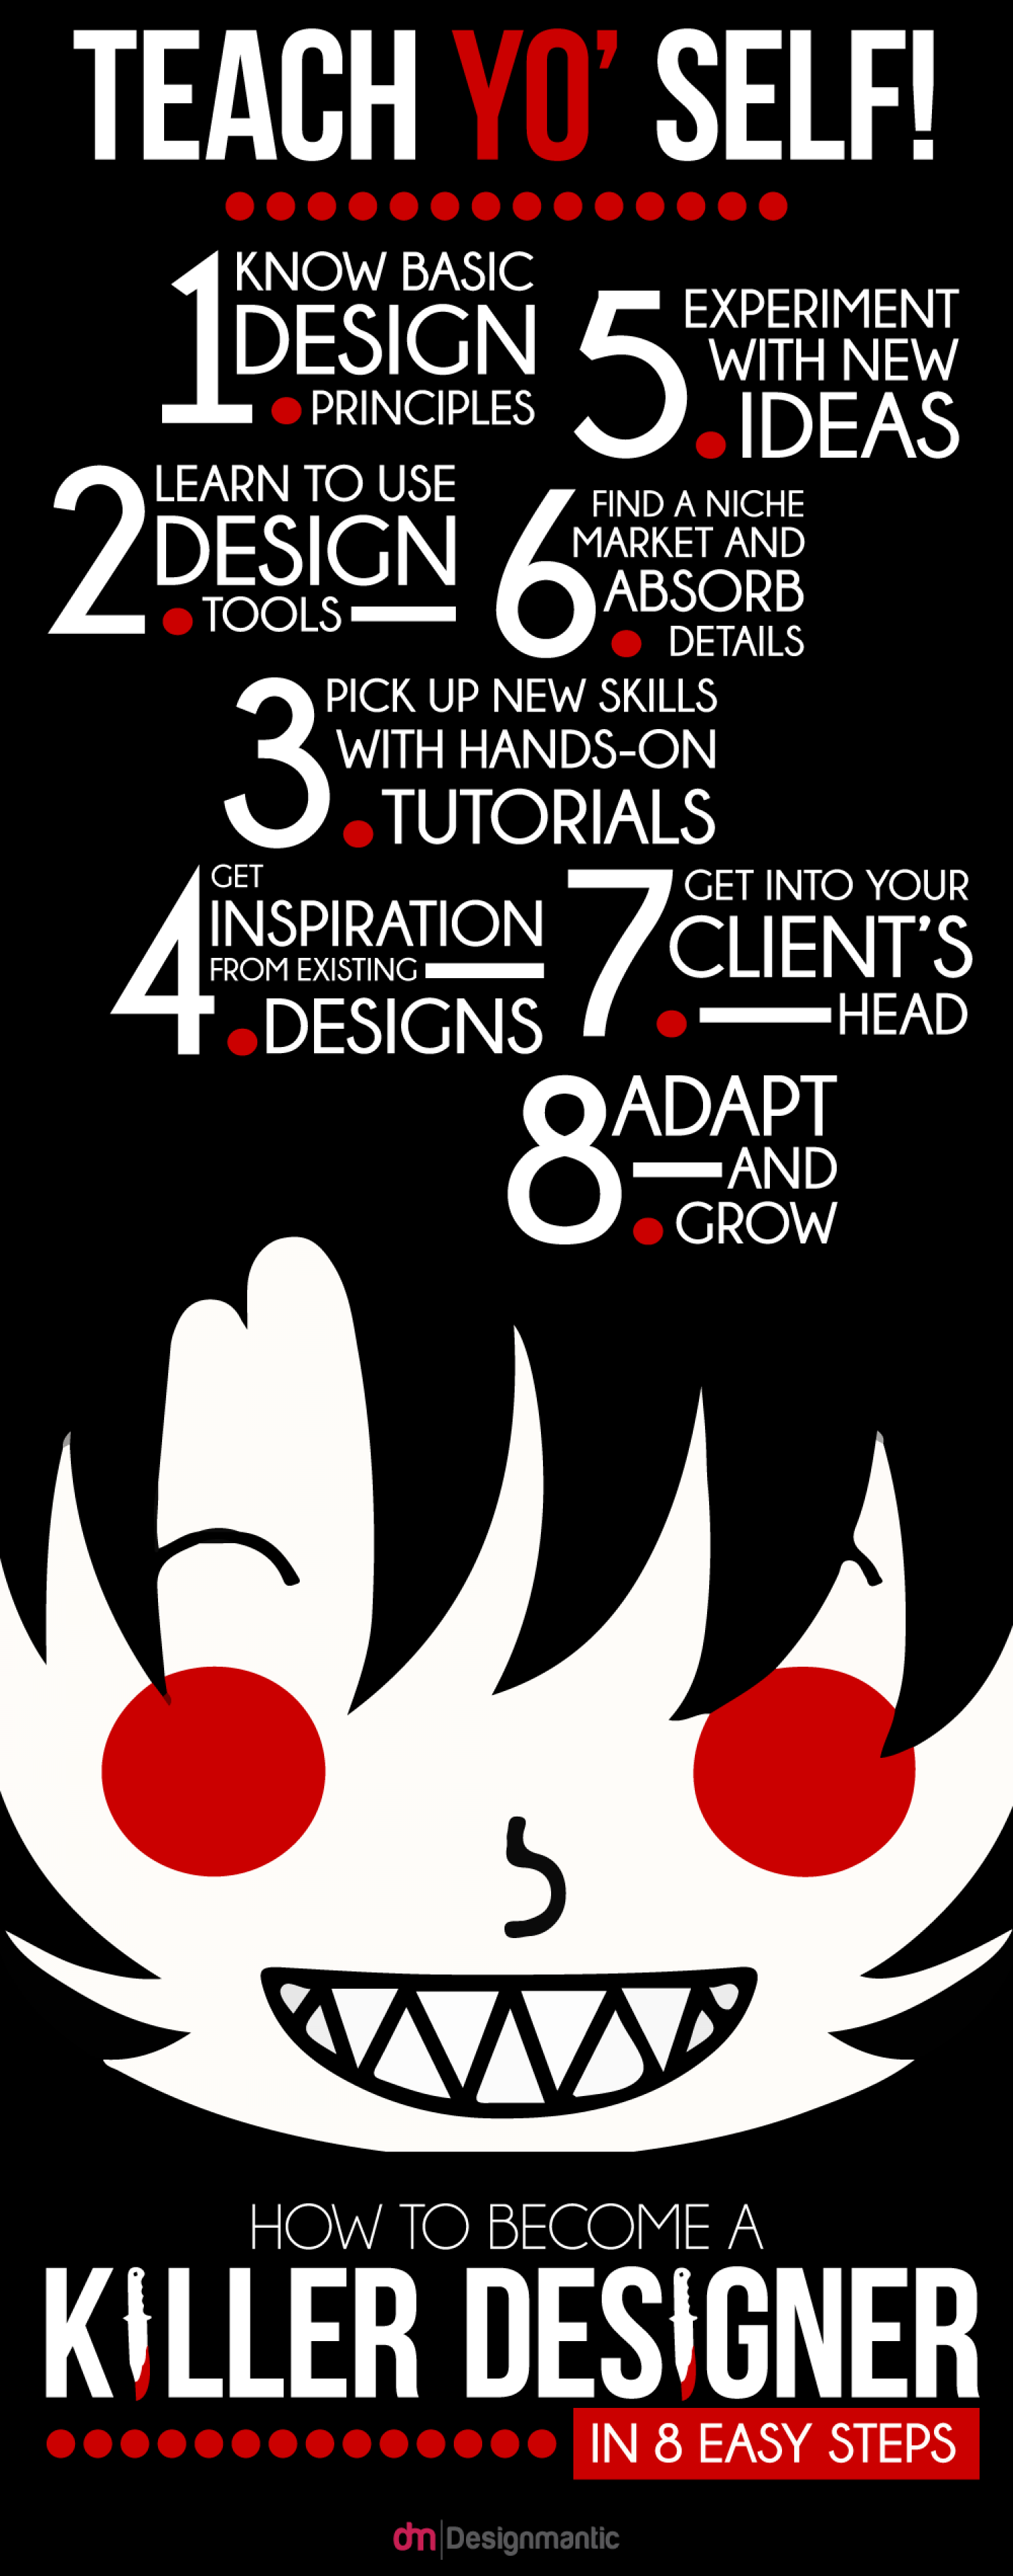 How To Become A Killer Designer In Eight Easy Steps? Infographic